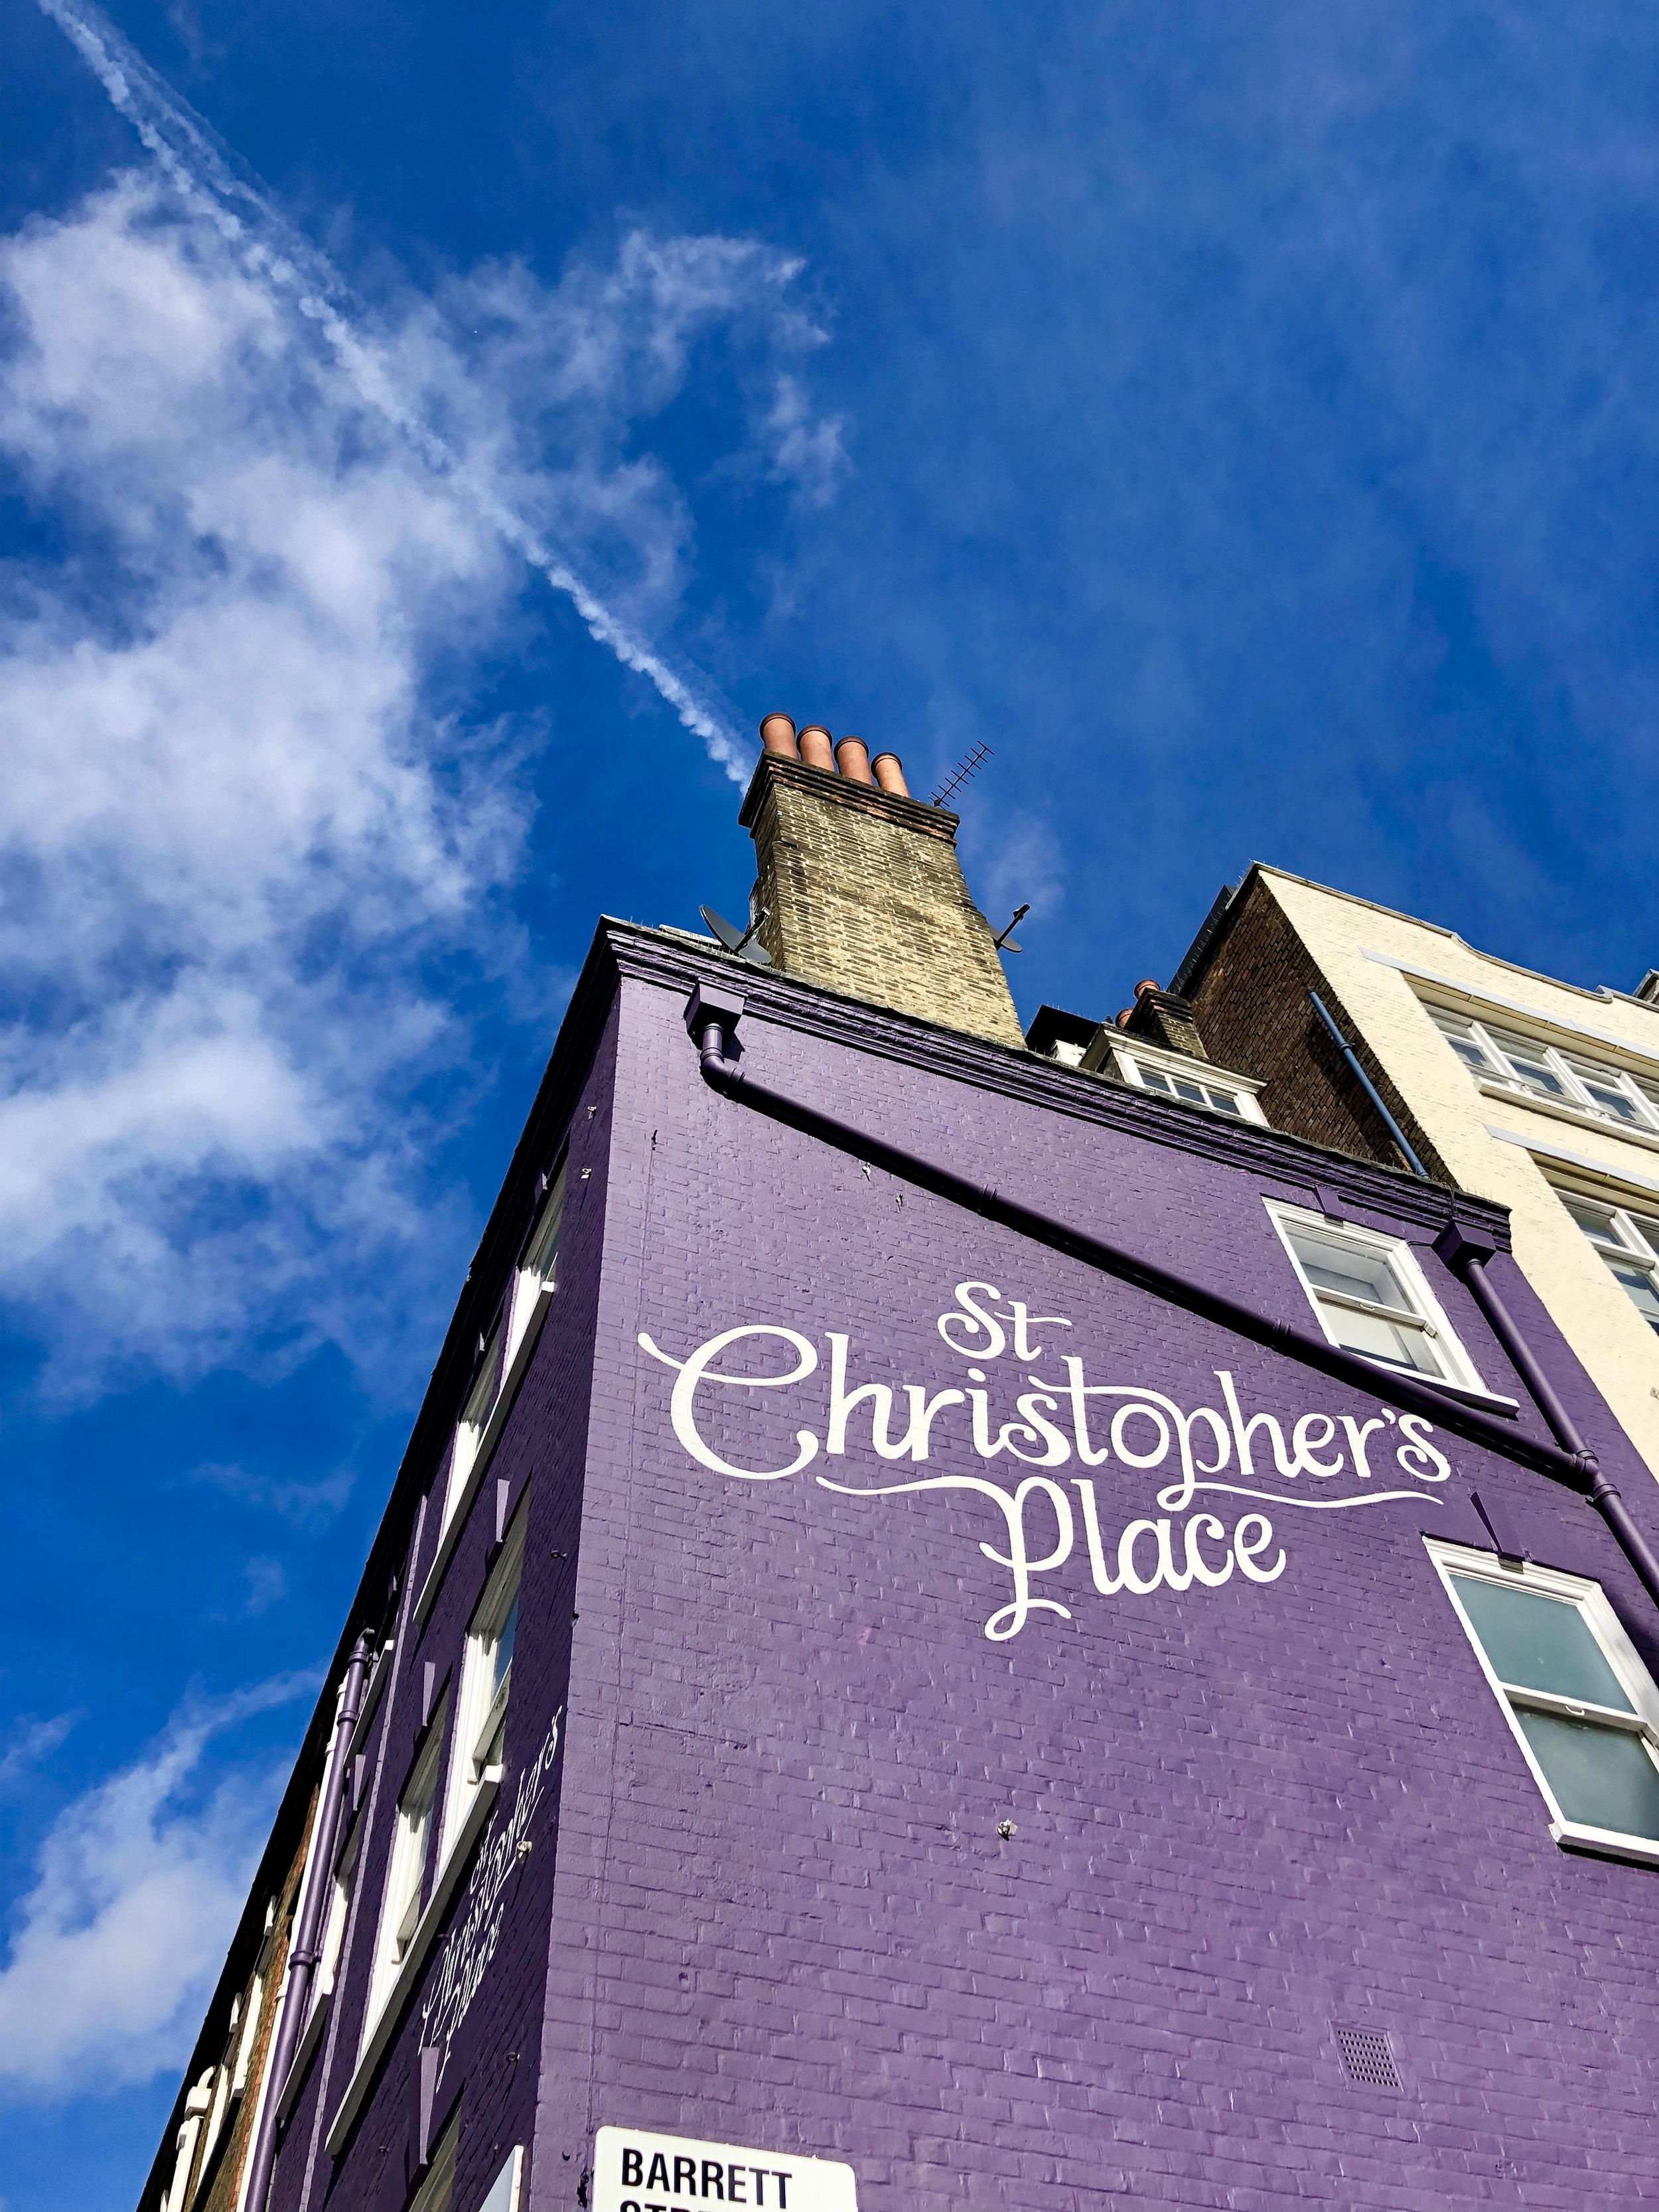 St. Christopher's Place (London)